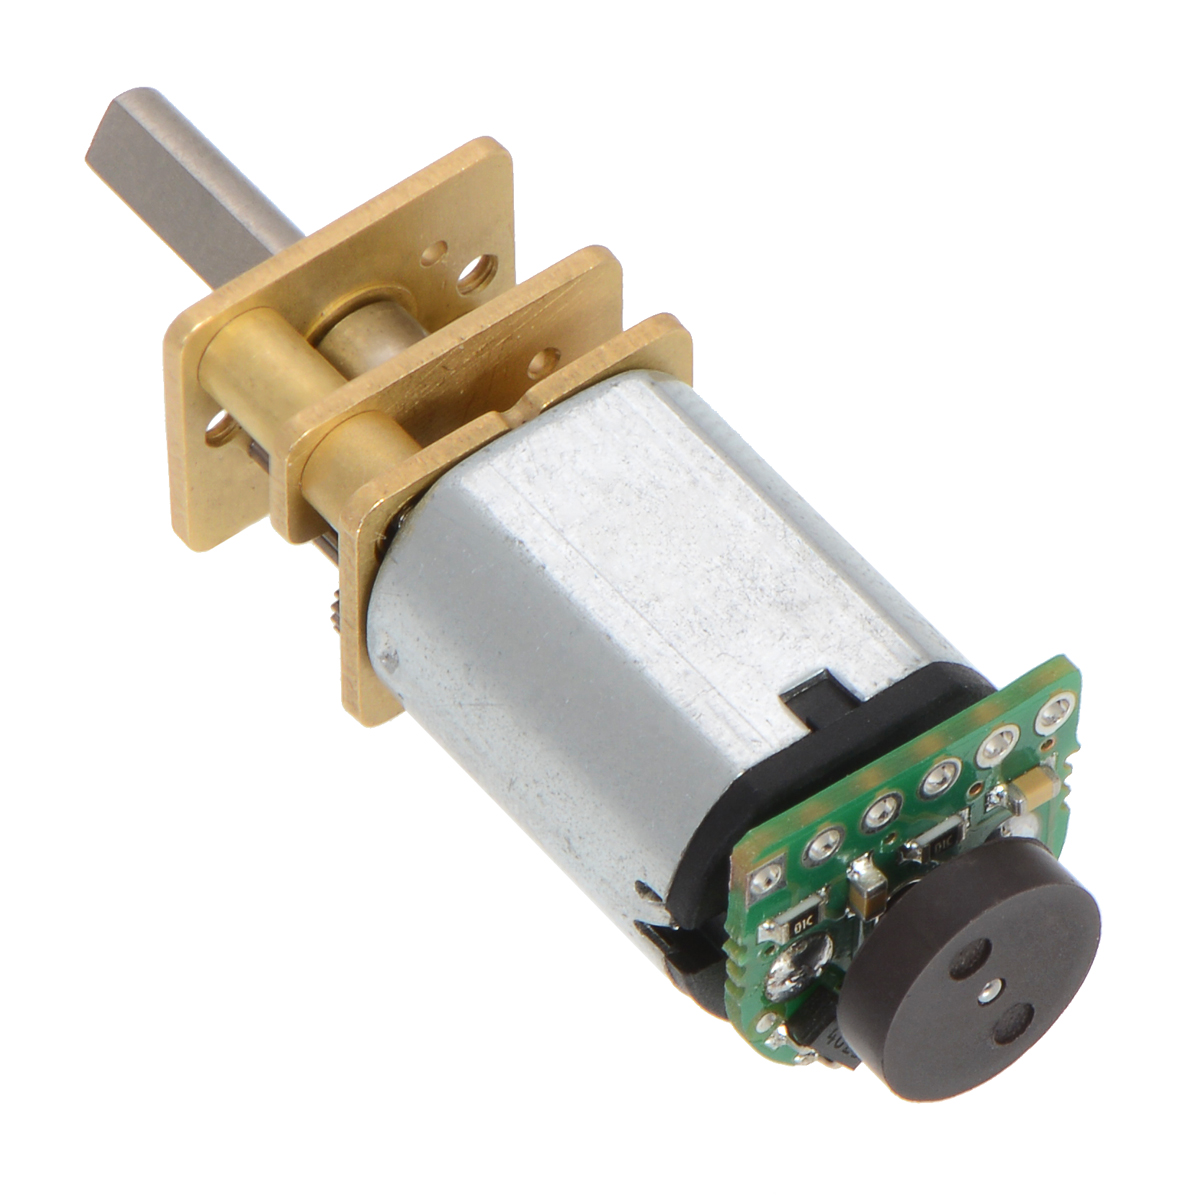 Pololu - New products: Magnetic quadrature encoders for